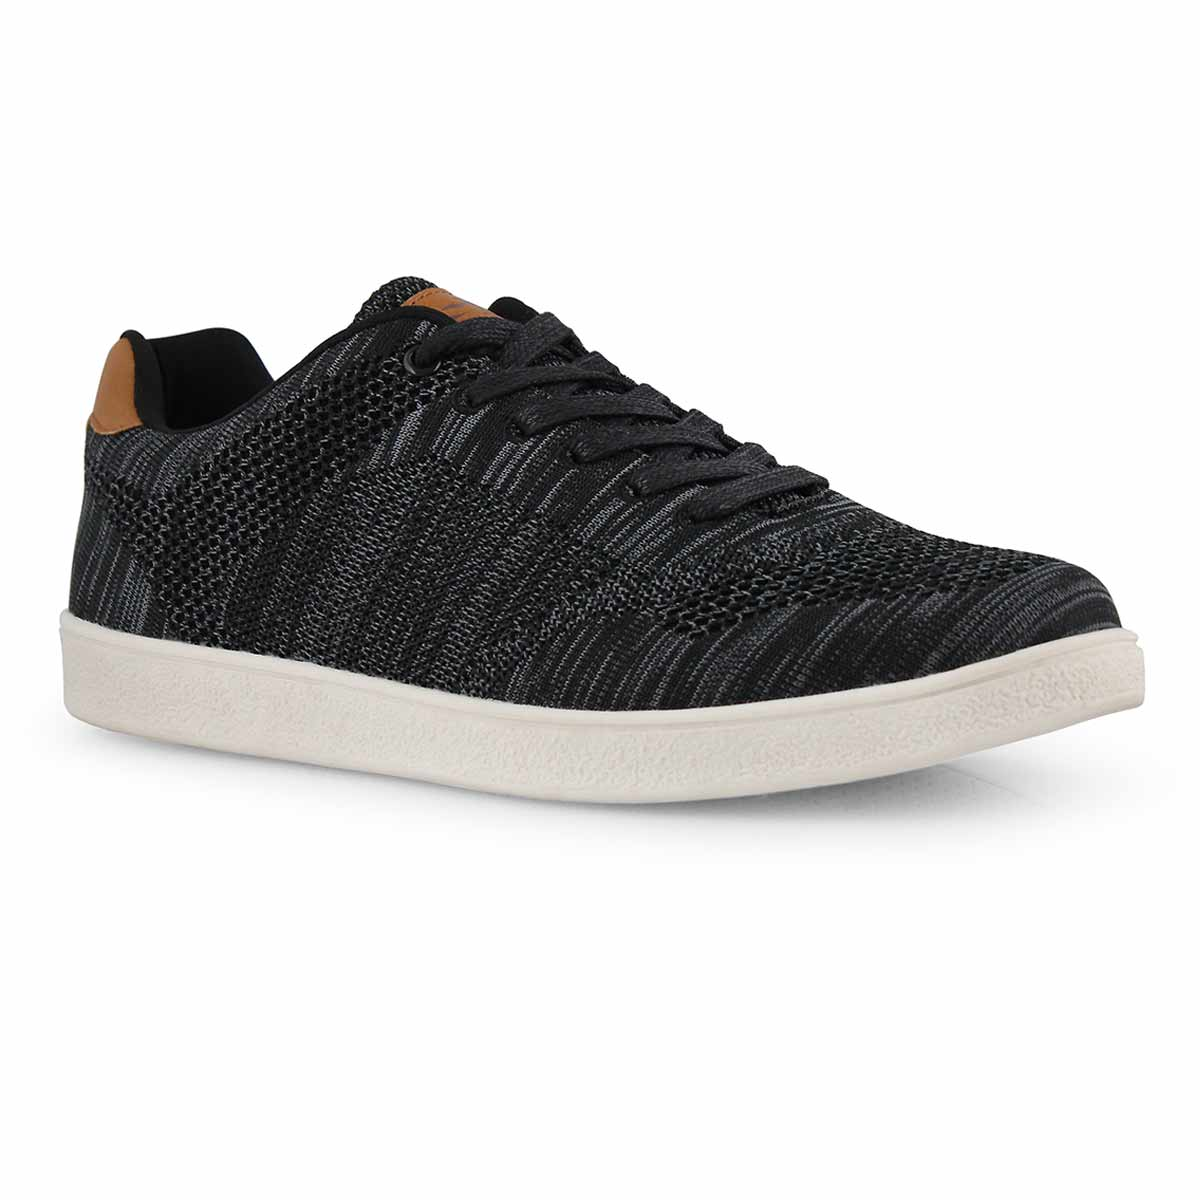 Mns Brandon black casual sneaker